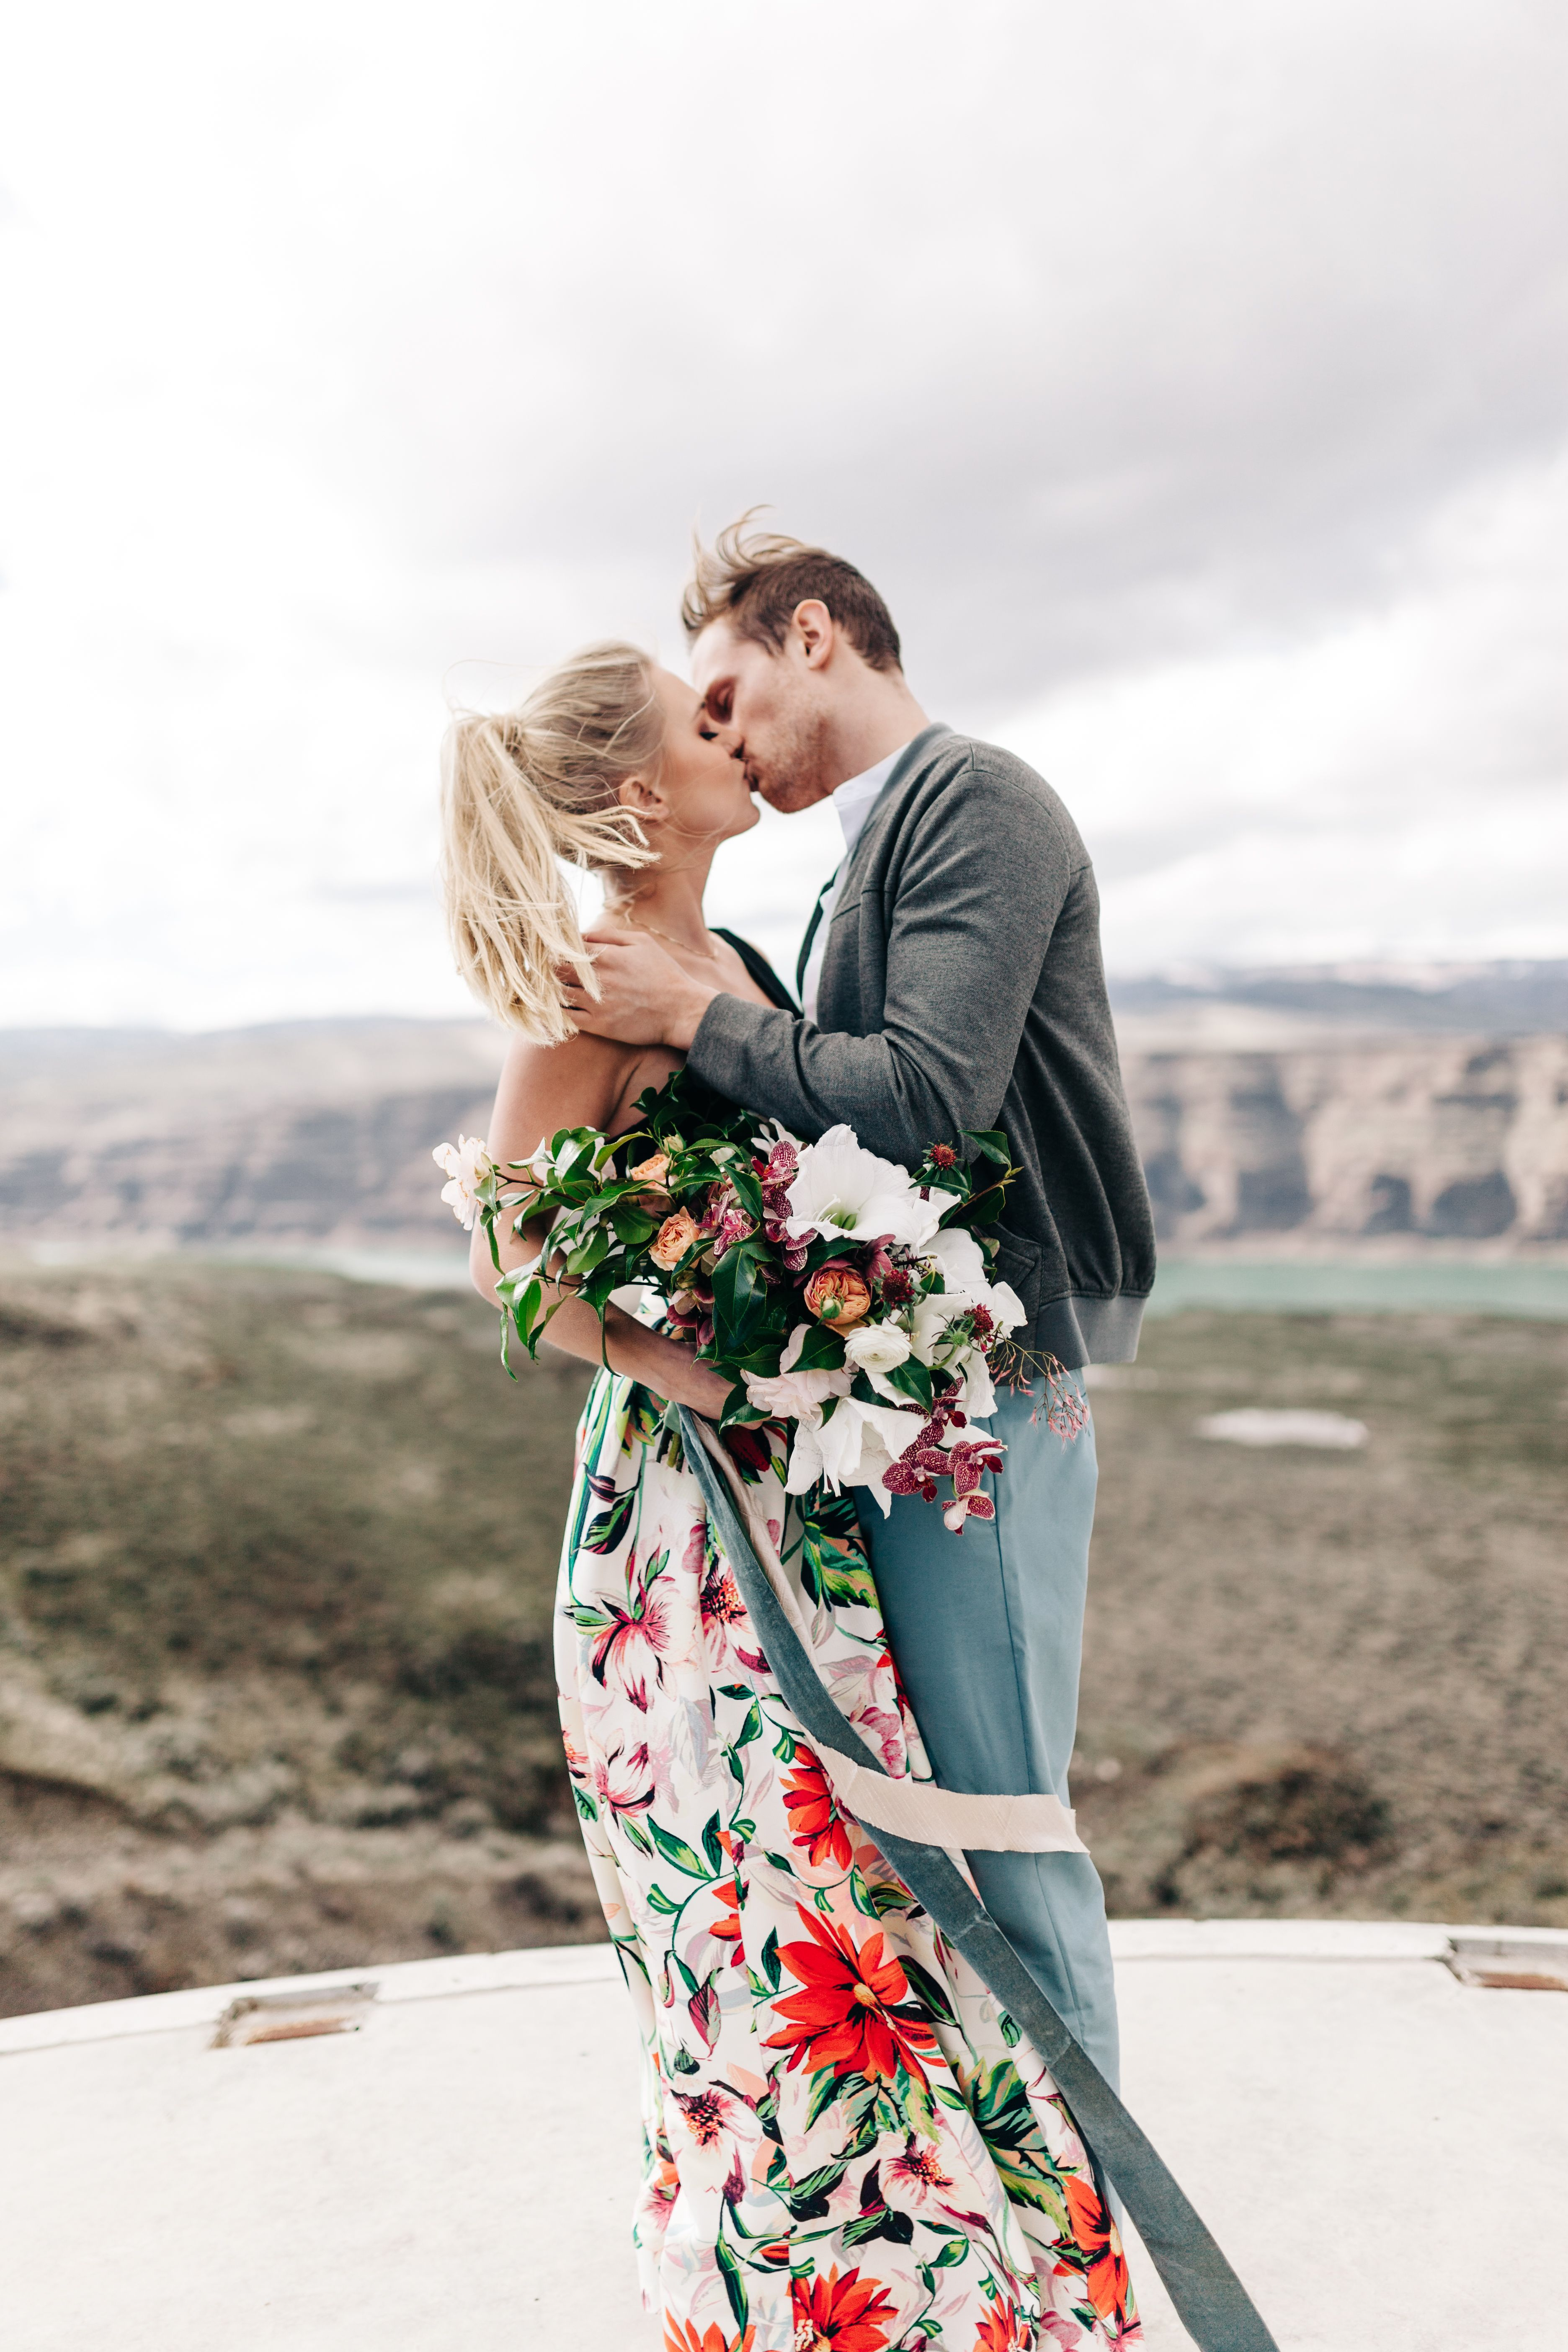 Check out more of Ali & Evan's engagement shoot at Cave B in Quincy, Washington.  On the blog today!